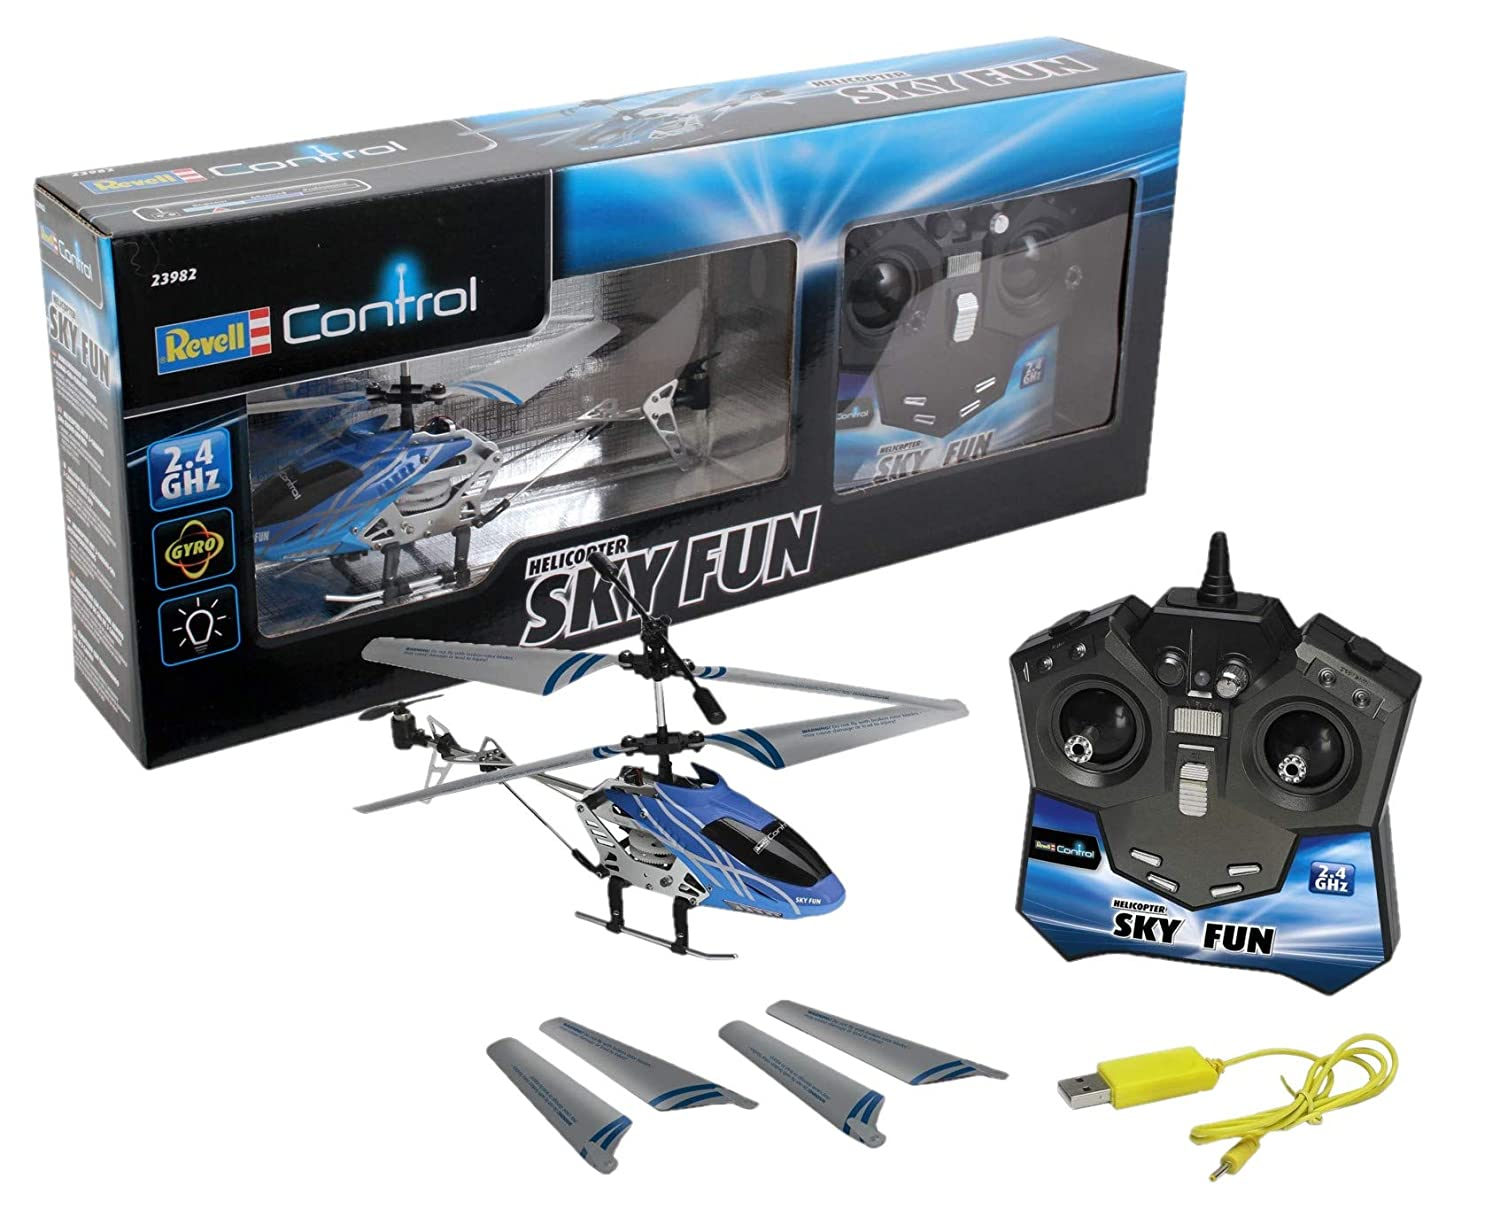 3d5ab4cc219 Revell Control Sky Fun RC Helicopter  Amazon.co.uk  Toys   Games